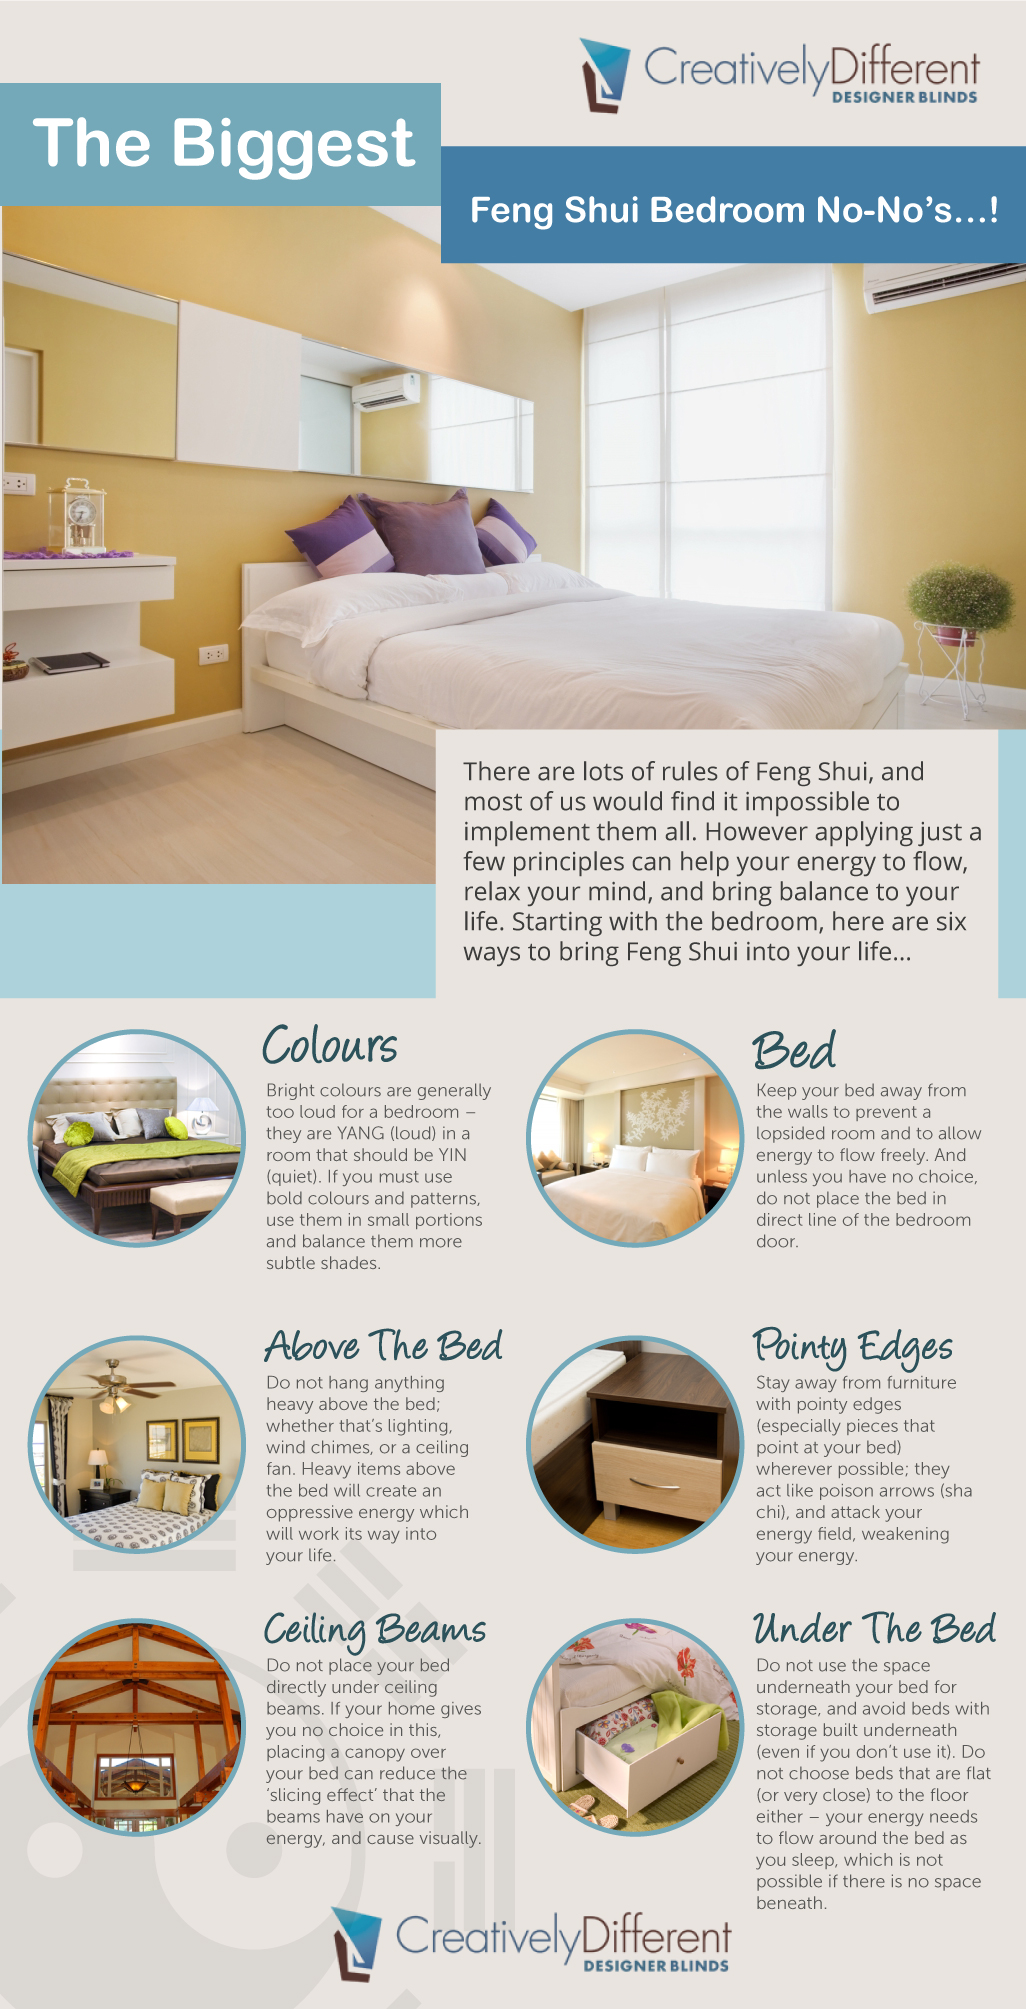 Feng Shui Bedroom - iNFOGRAPHiCs MANiA Feng Shui For Bedroom on flowers for bedroom, renovation for bedroom, flooring for bedroom, zen for bedroom, crafts for bedroom, food for bedroom, art for bedroom, fashion for bedroom, beauty for bedroom, vastu for bedroom, sports for bedroom, inspiration for bedroom, diy for bedroom, security for bedroom, design for bedroom, fung shui bedroom, painting for bedroom, green and white bedroom, furniture for bedroom, entertainment for bedroom,